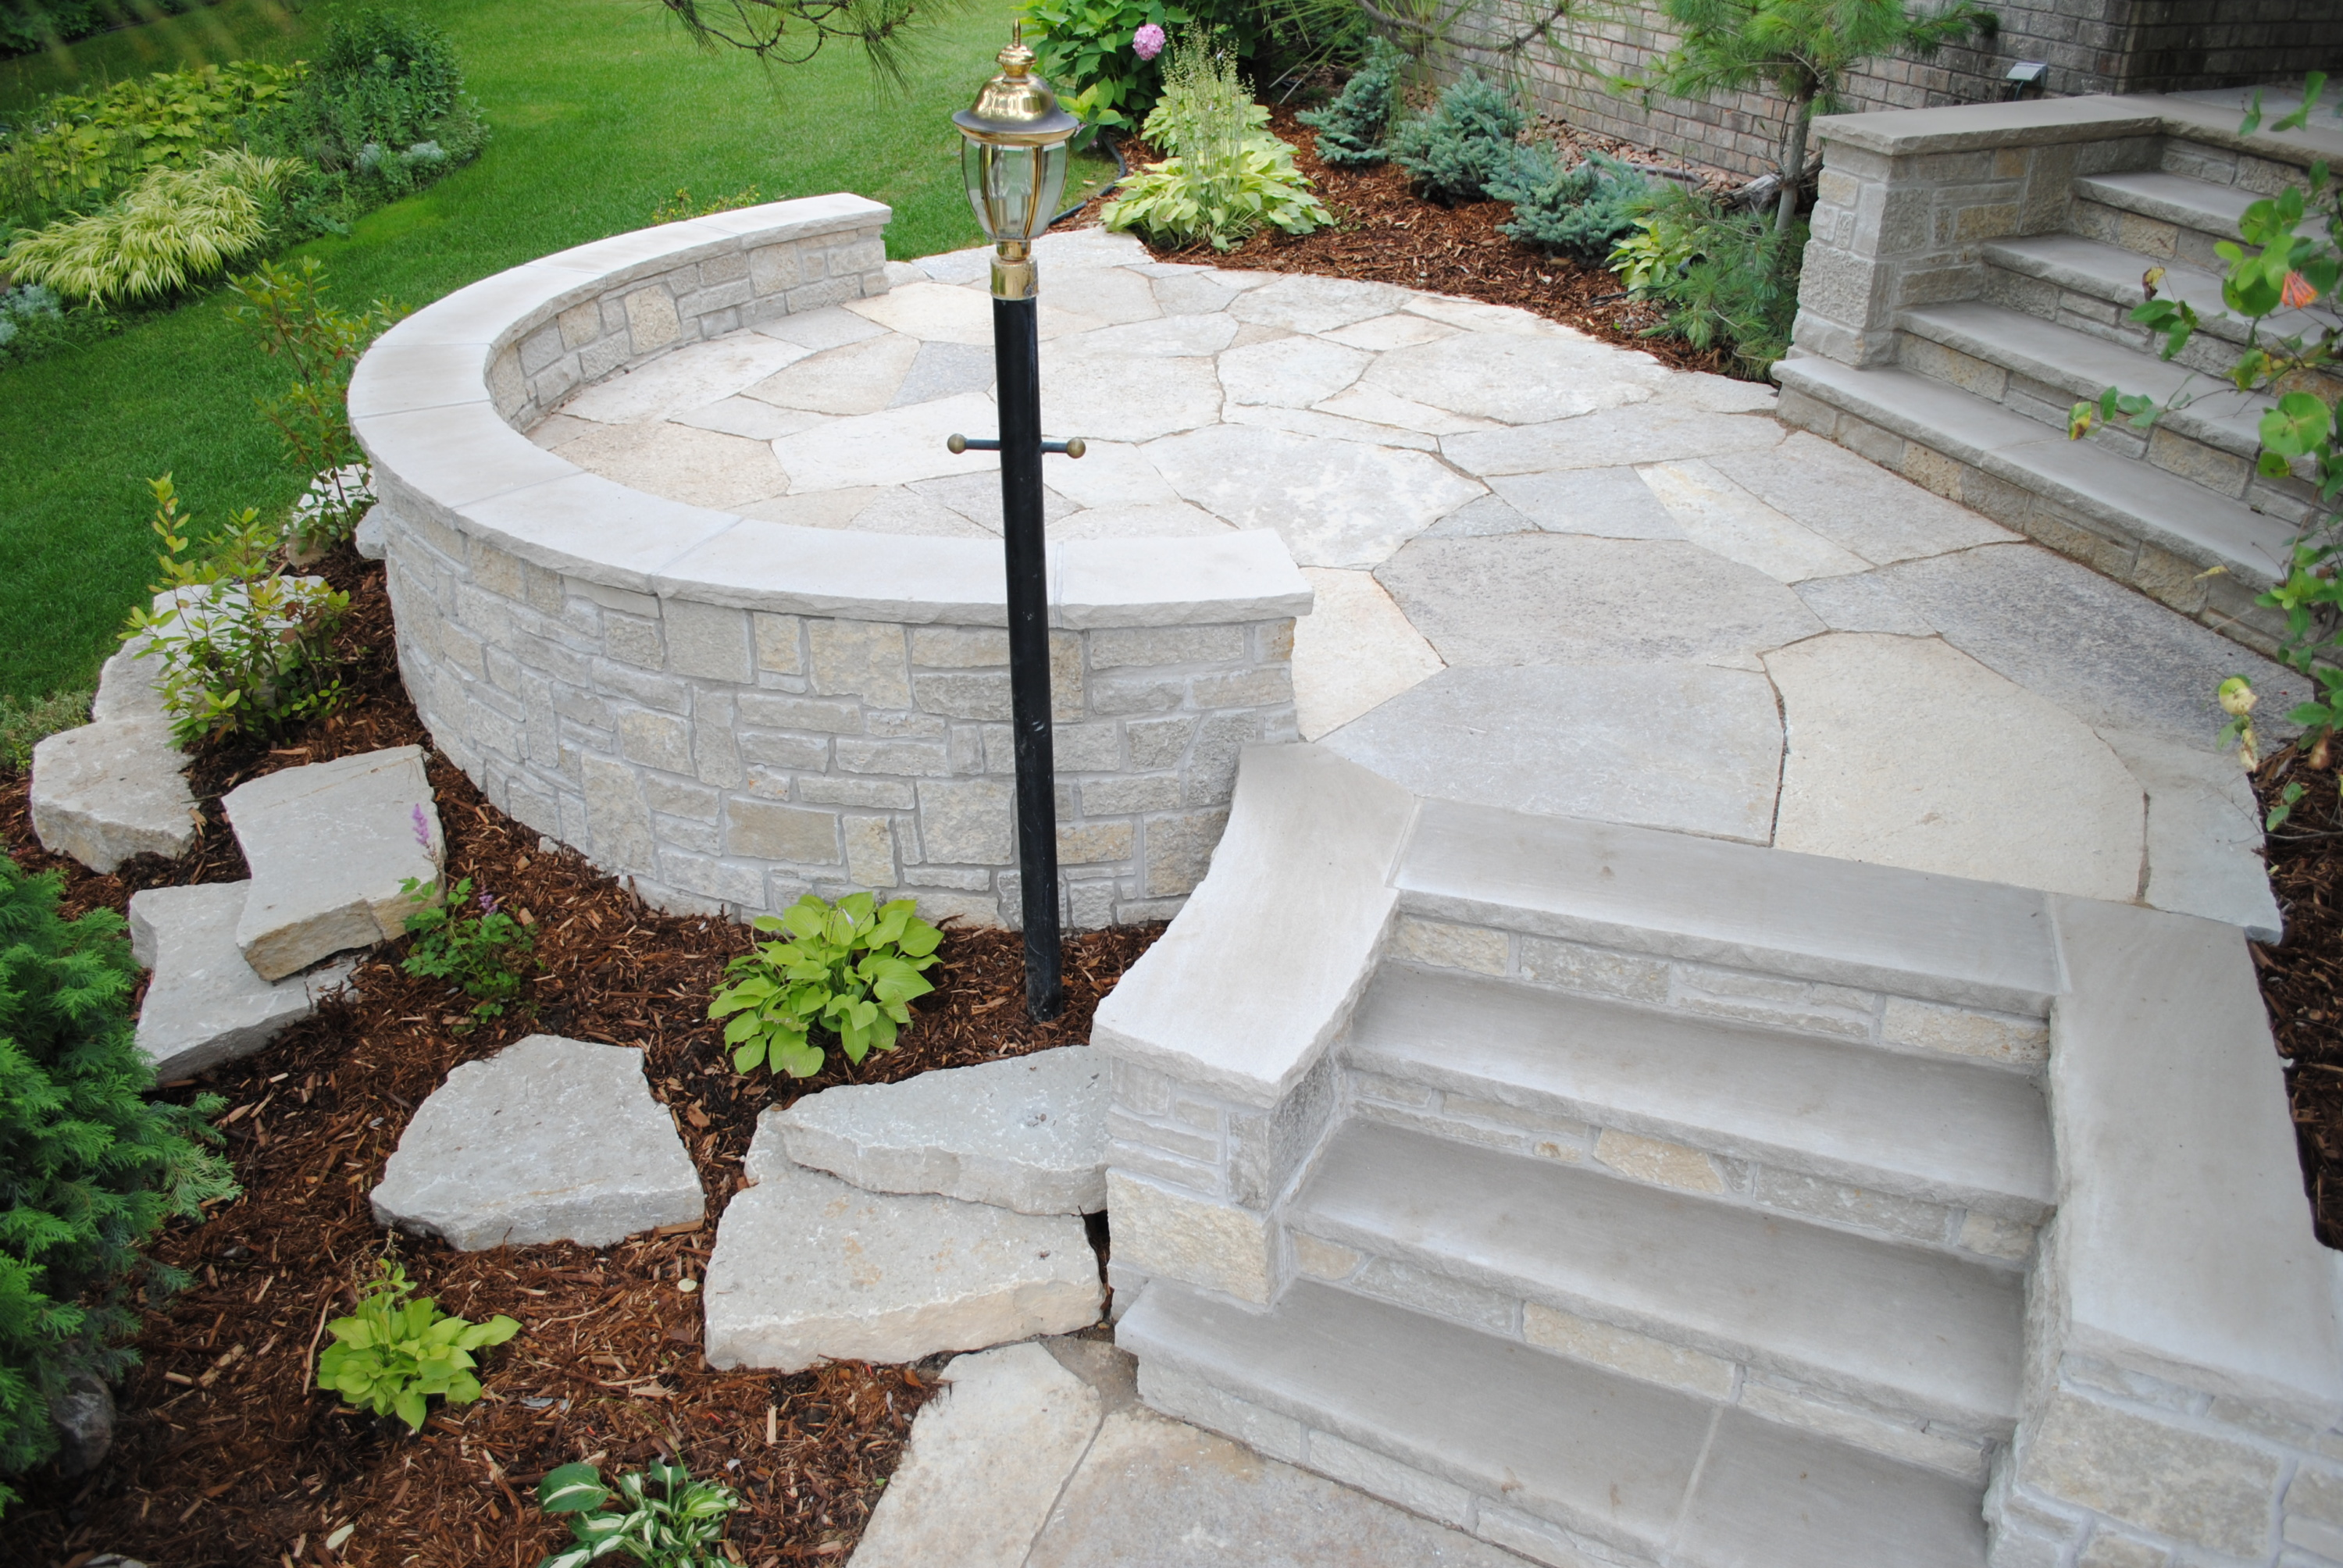 Oakfield Flagstone Is Light In Color And Ranges From Cream To Soft Gray.  The A Dimpled, Rugged Surface Of This Material Makes It A Great Choice For  Walk ...